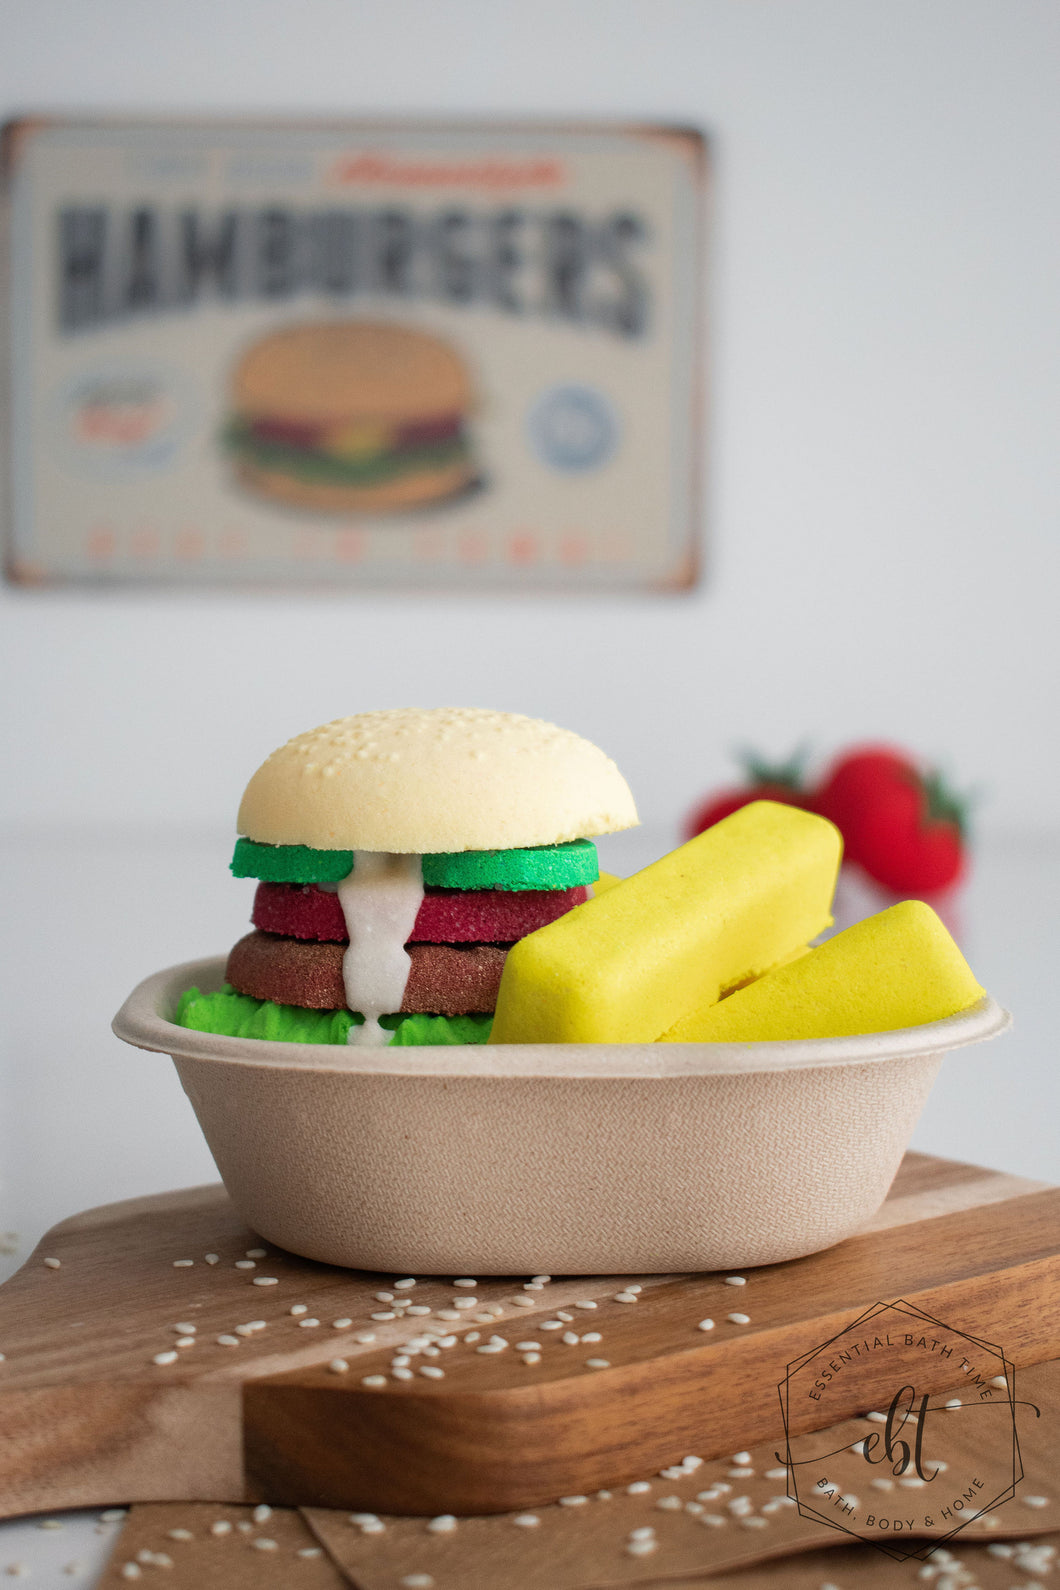 EBT Clubhouse burger and fries bath bomb pack - Essential bath time